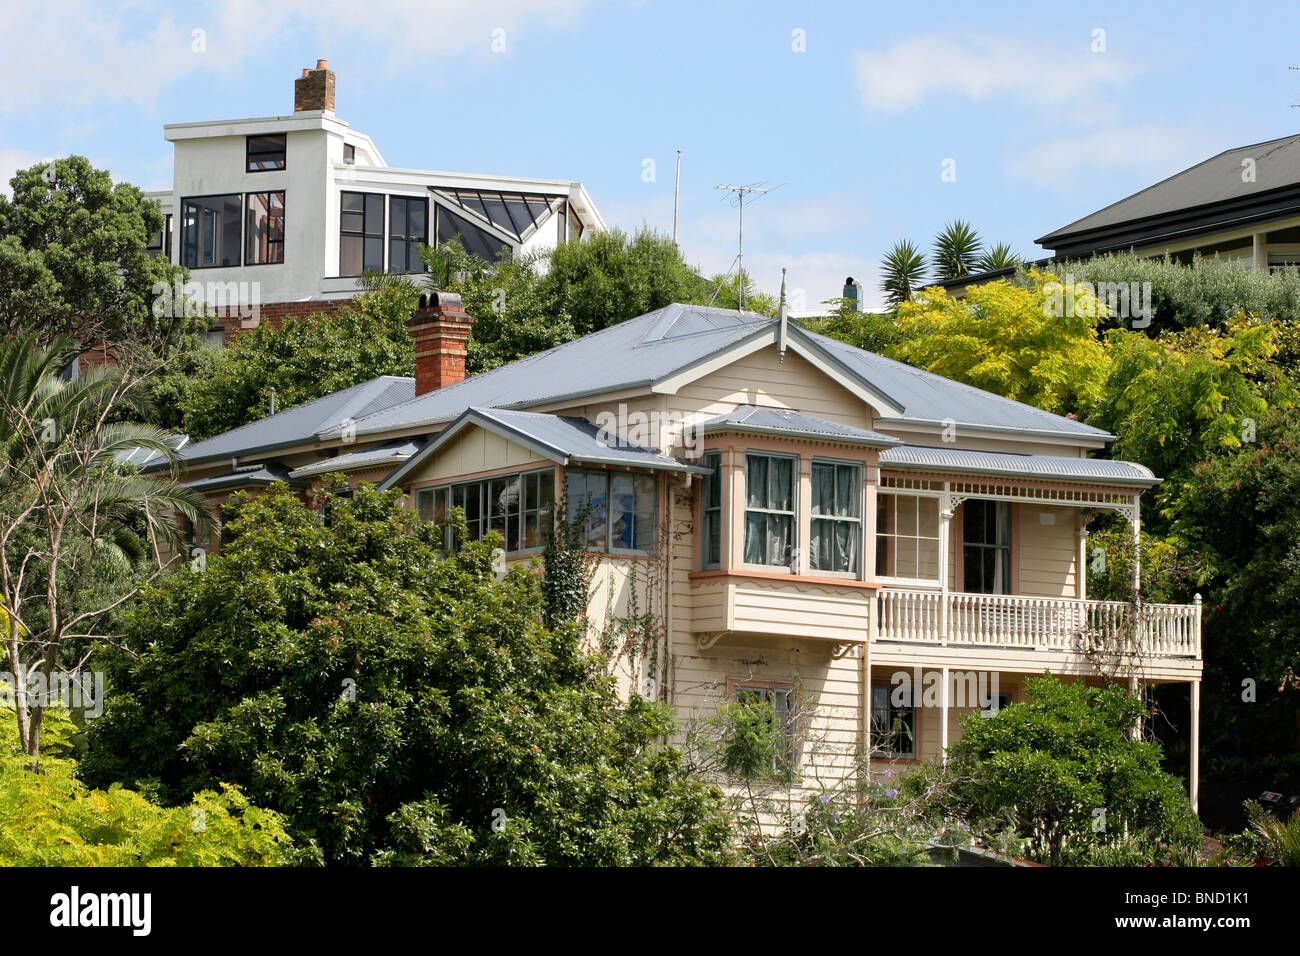 DEVONPORT outside Auckland New Zealand 2010 with one-familly houses in modern and Victorian stile - Stock Image